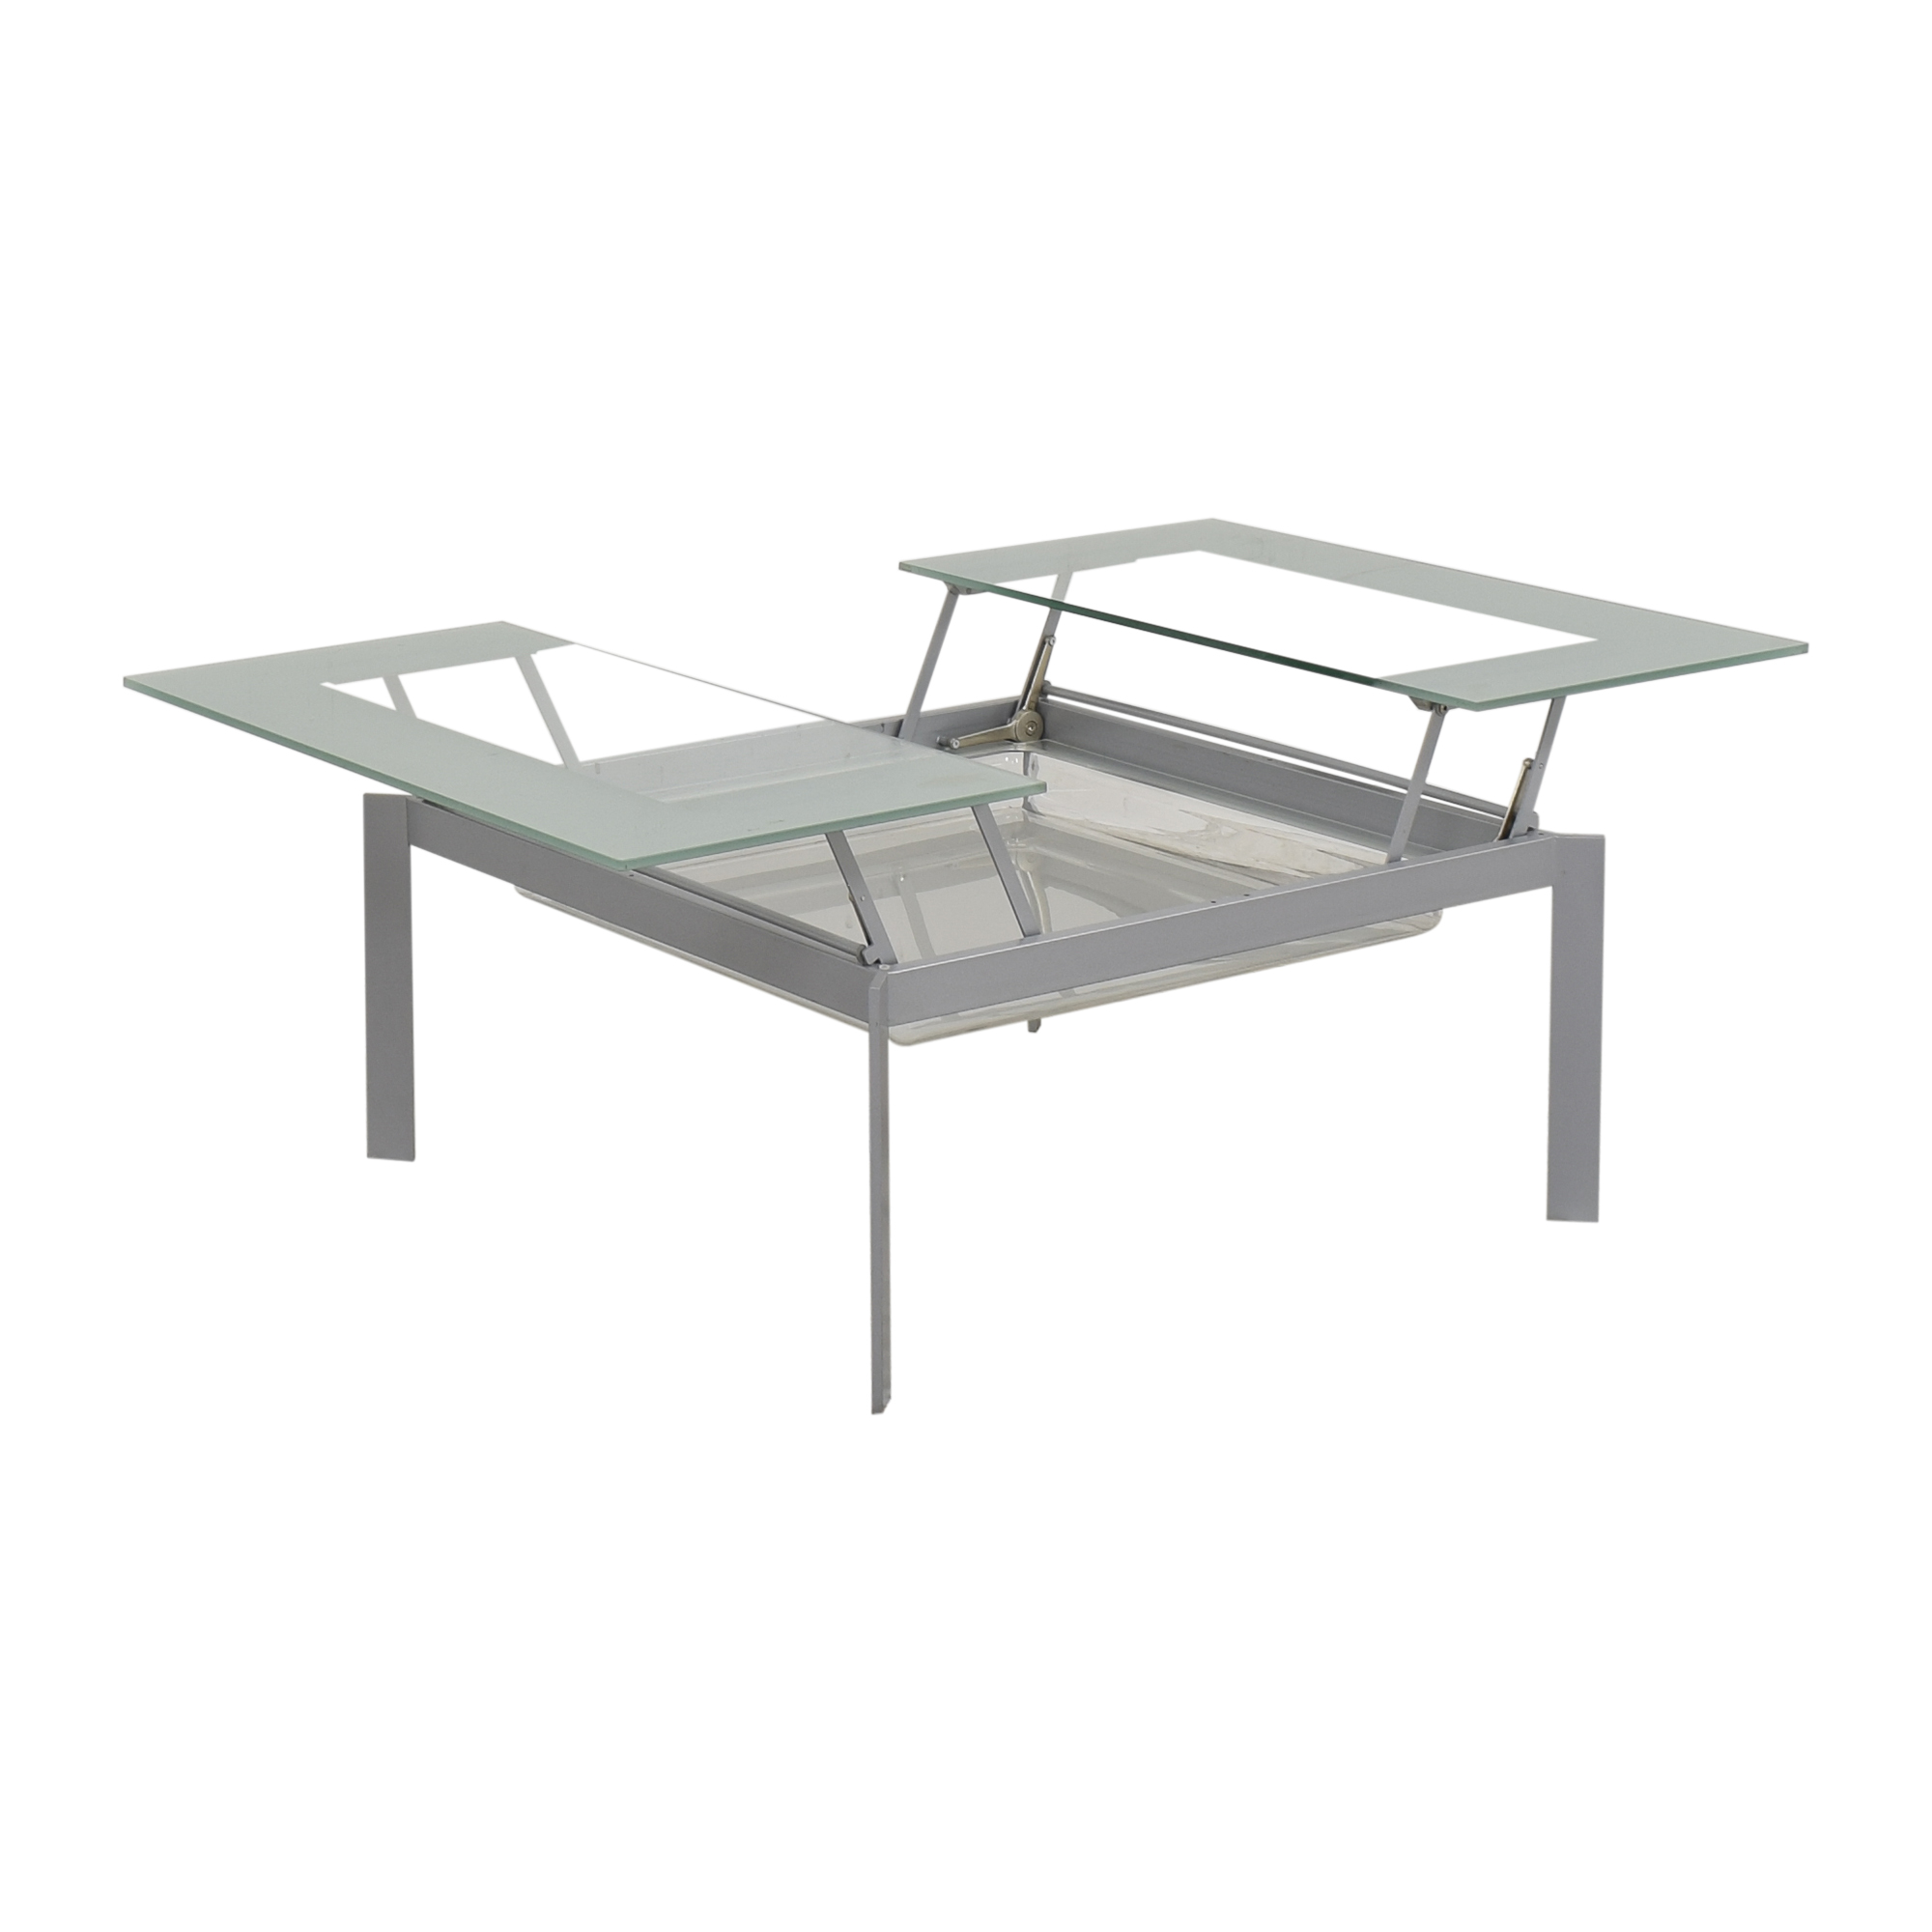 West Elm West Elm Pop Up Storage Coffee Table second hand